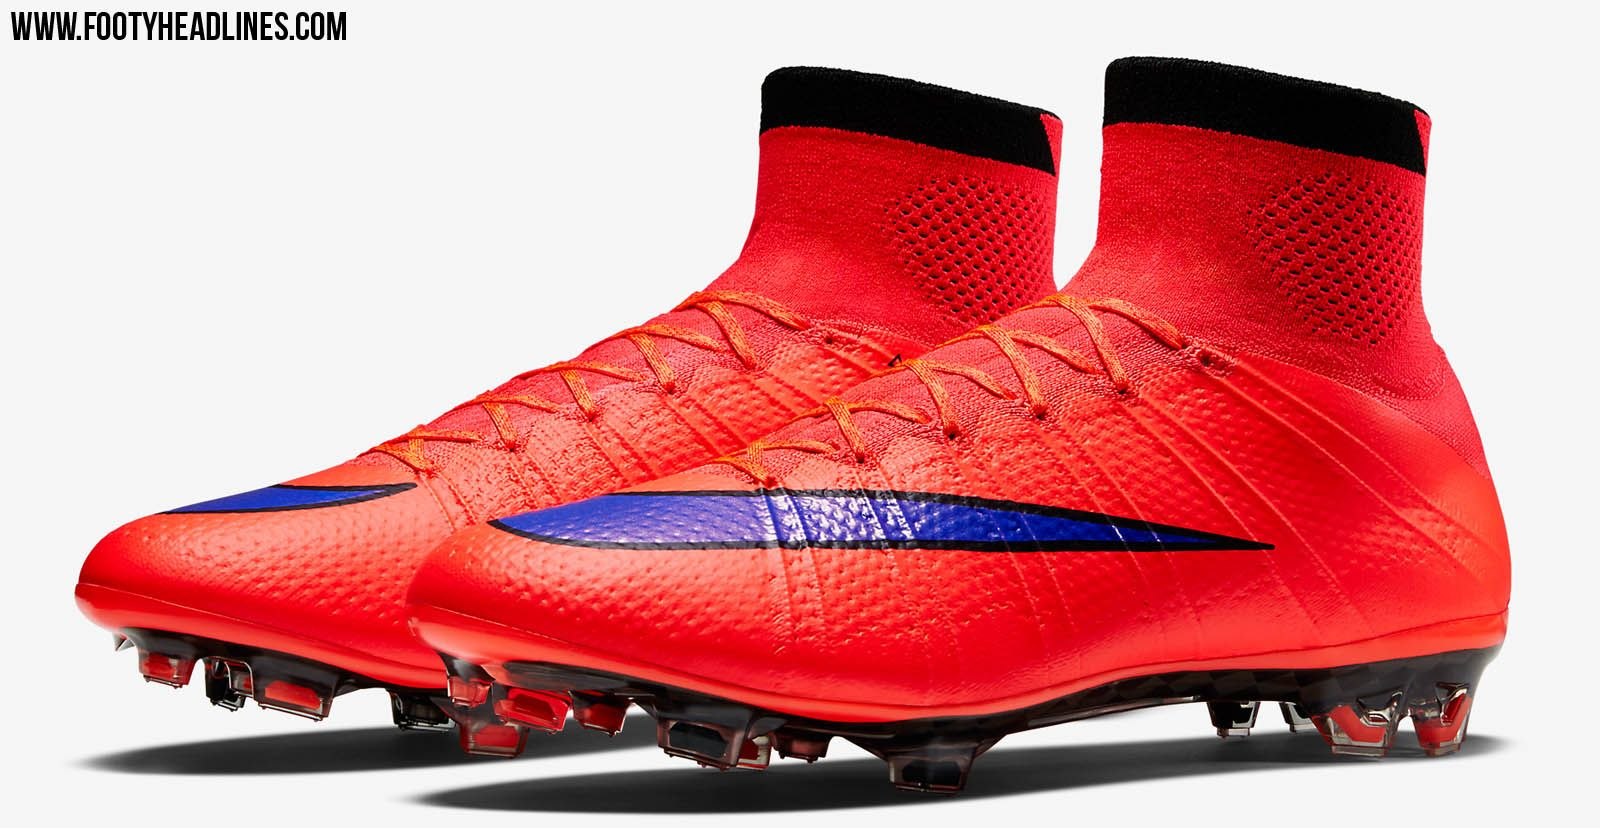 The new red Nike Mercurial Superfly 2015 Intense Heat Pack Football Boots  introduce a striking design. For the second Nike Mercurial Superfly 2015  Cleat ...